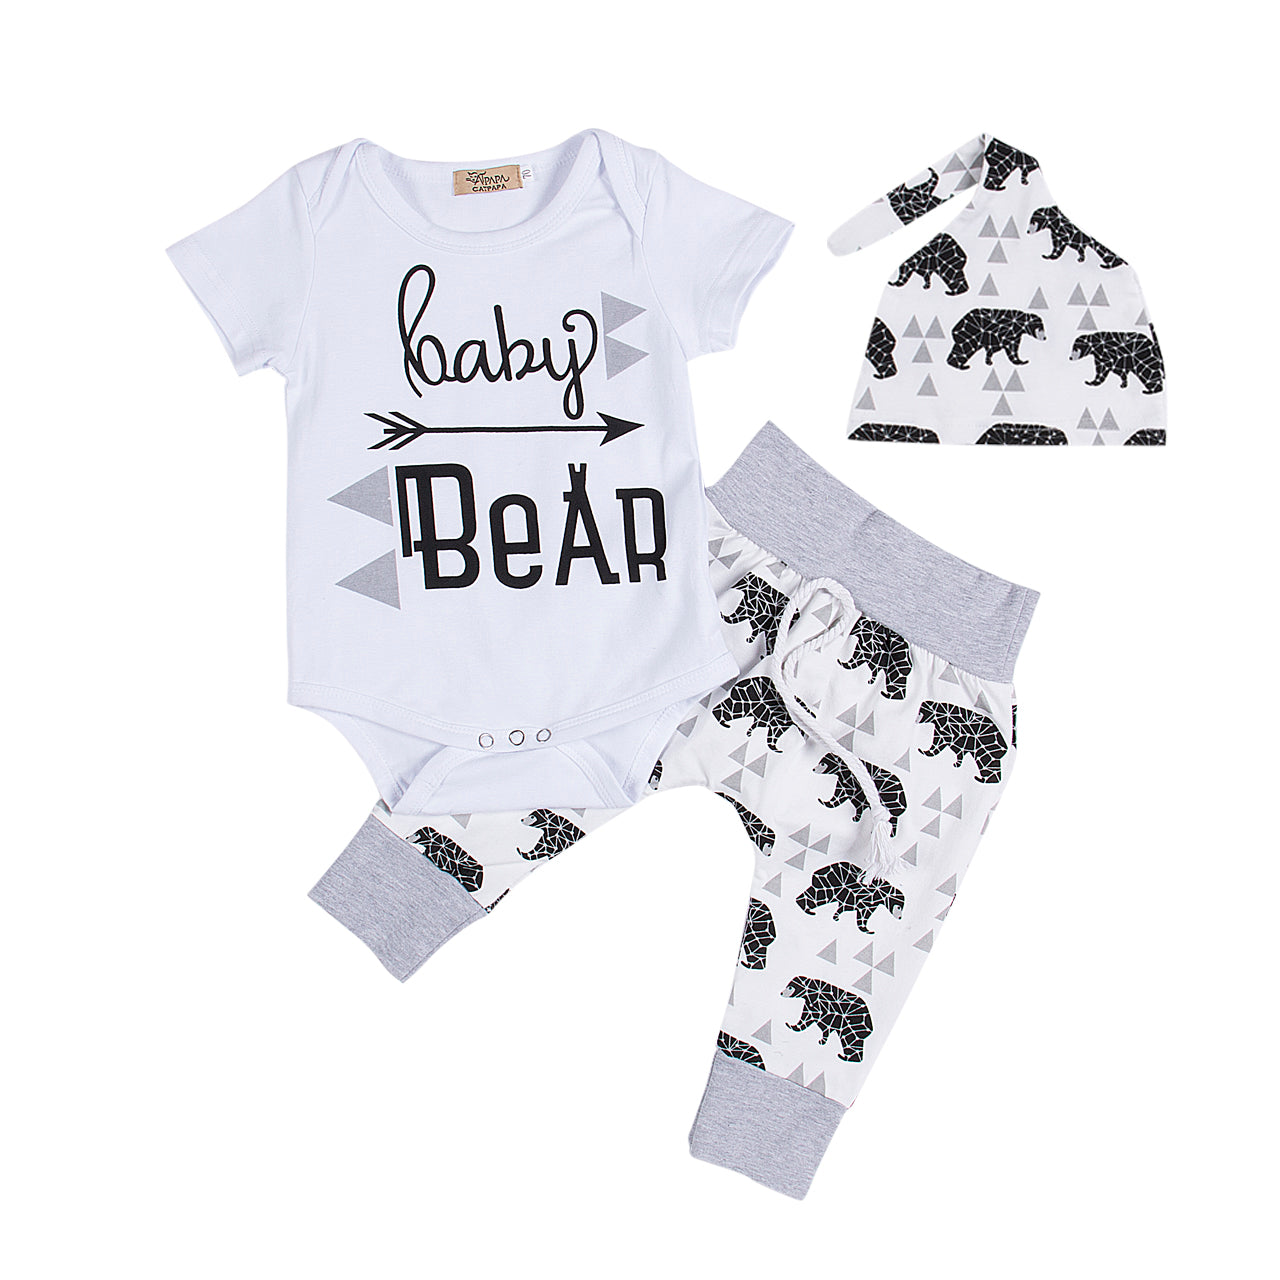 a9a6f8f23dc9 Bear Romper + Pants + Hat Baby Set - Style Well Spent